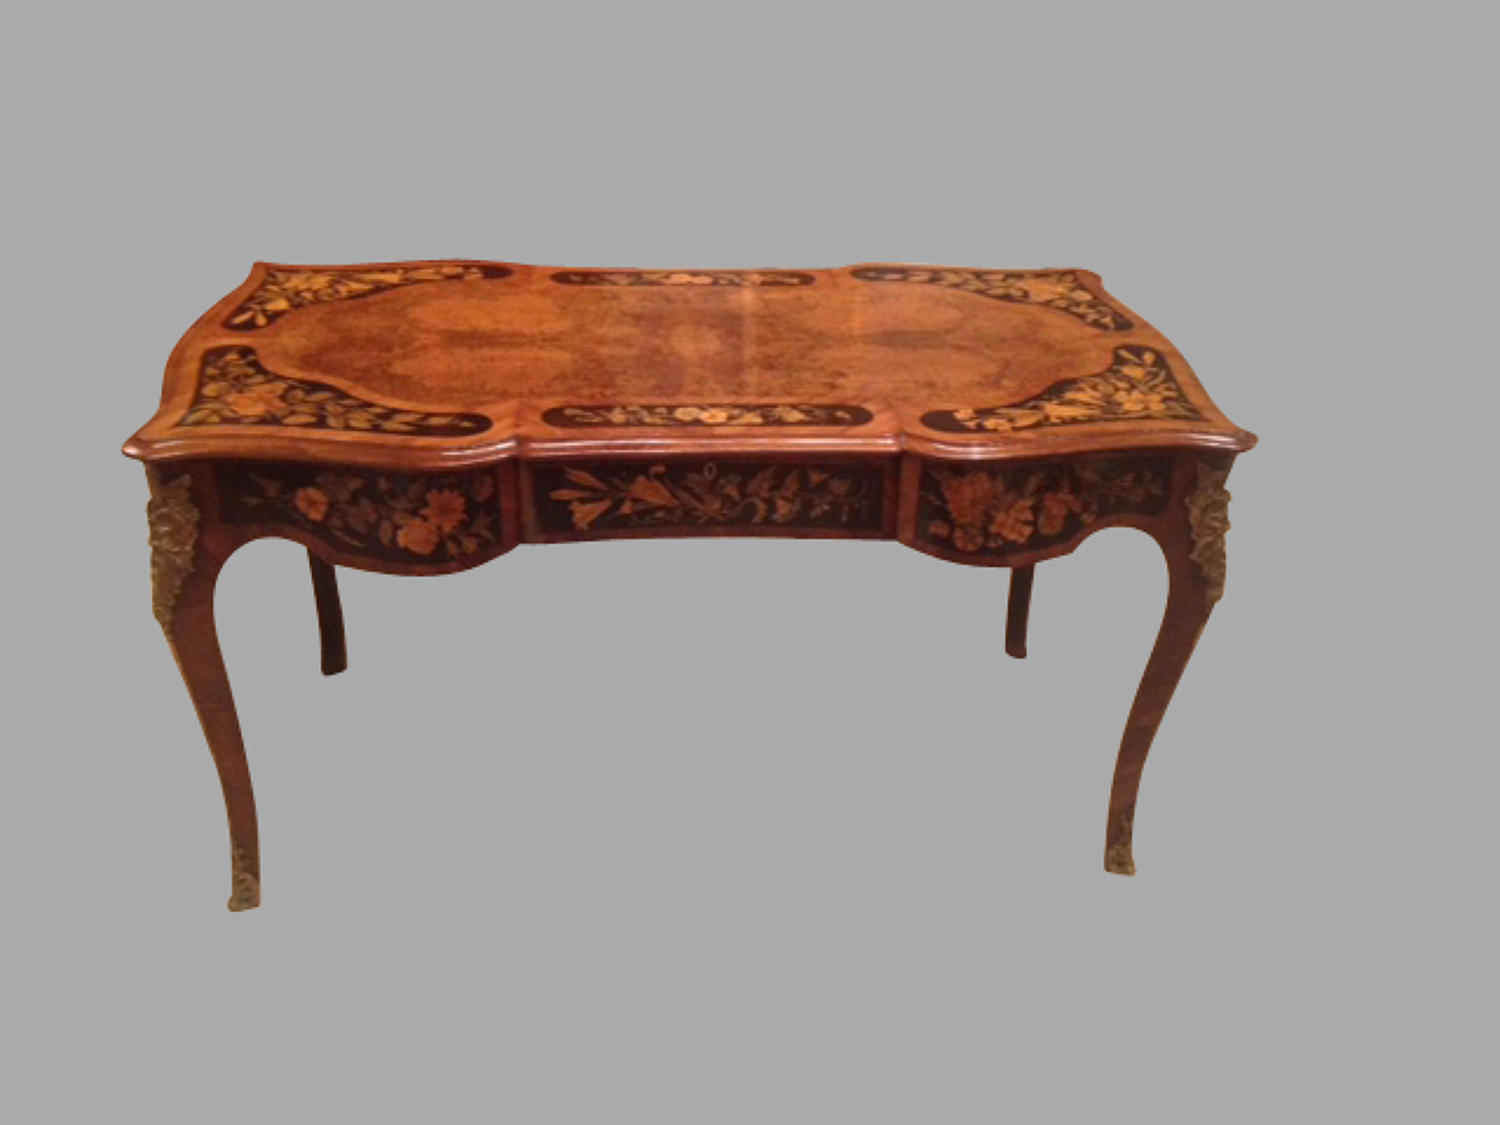 19th century burr walnut writing table